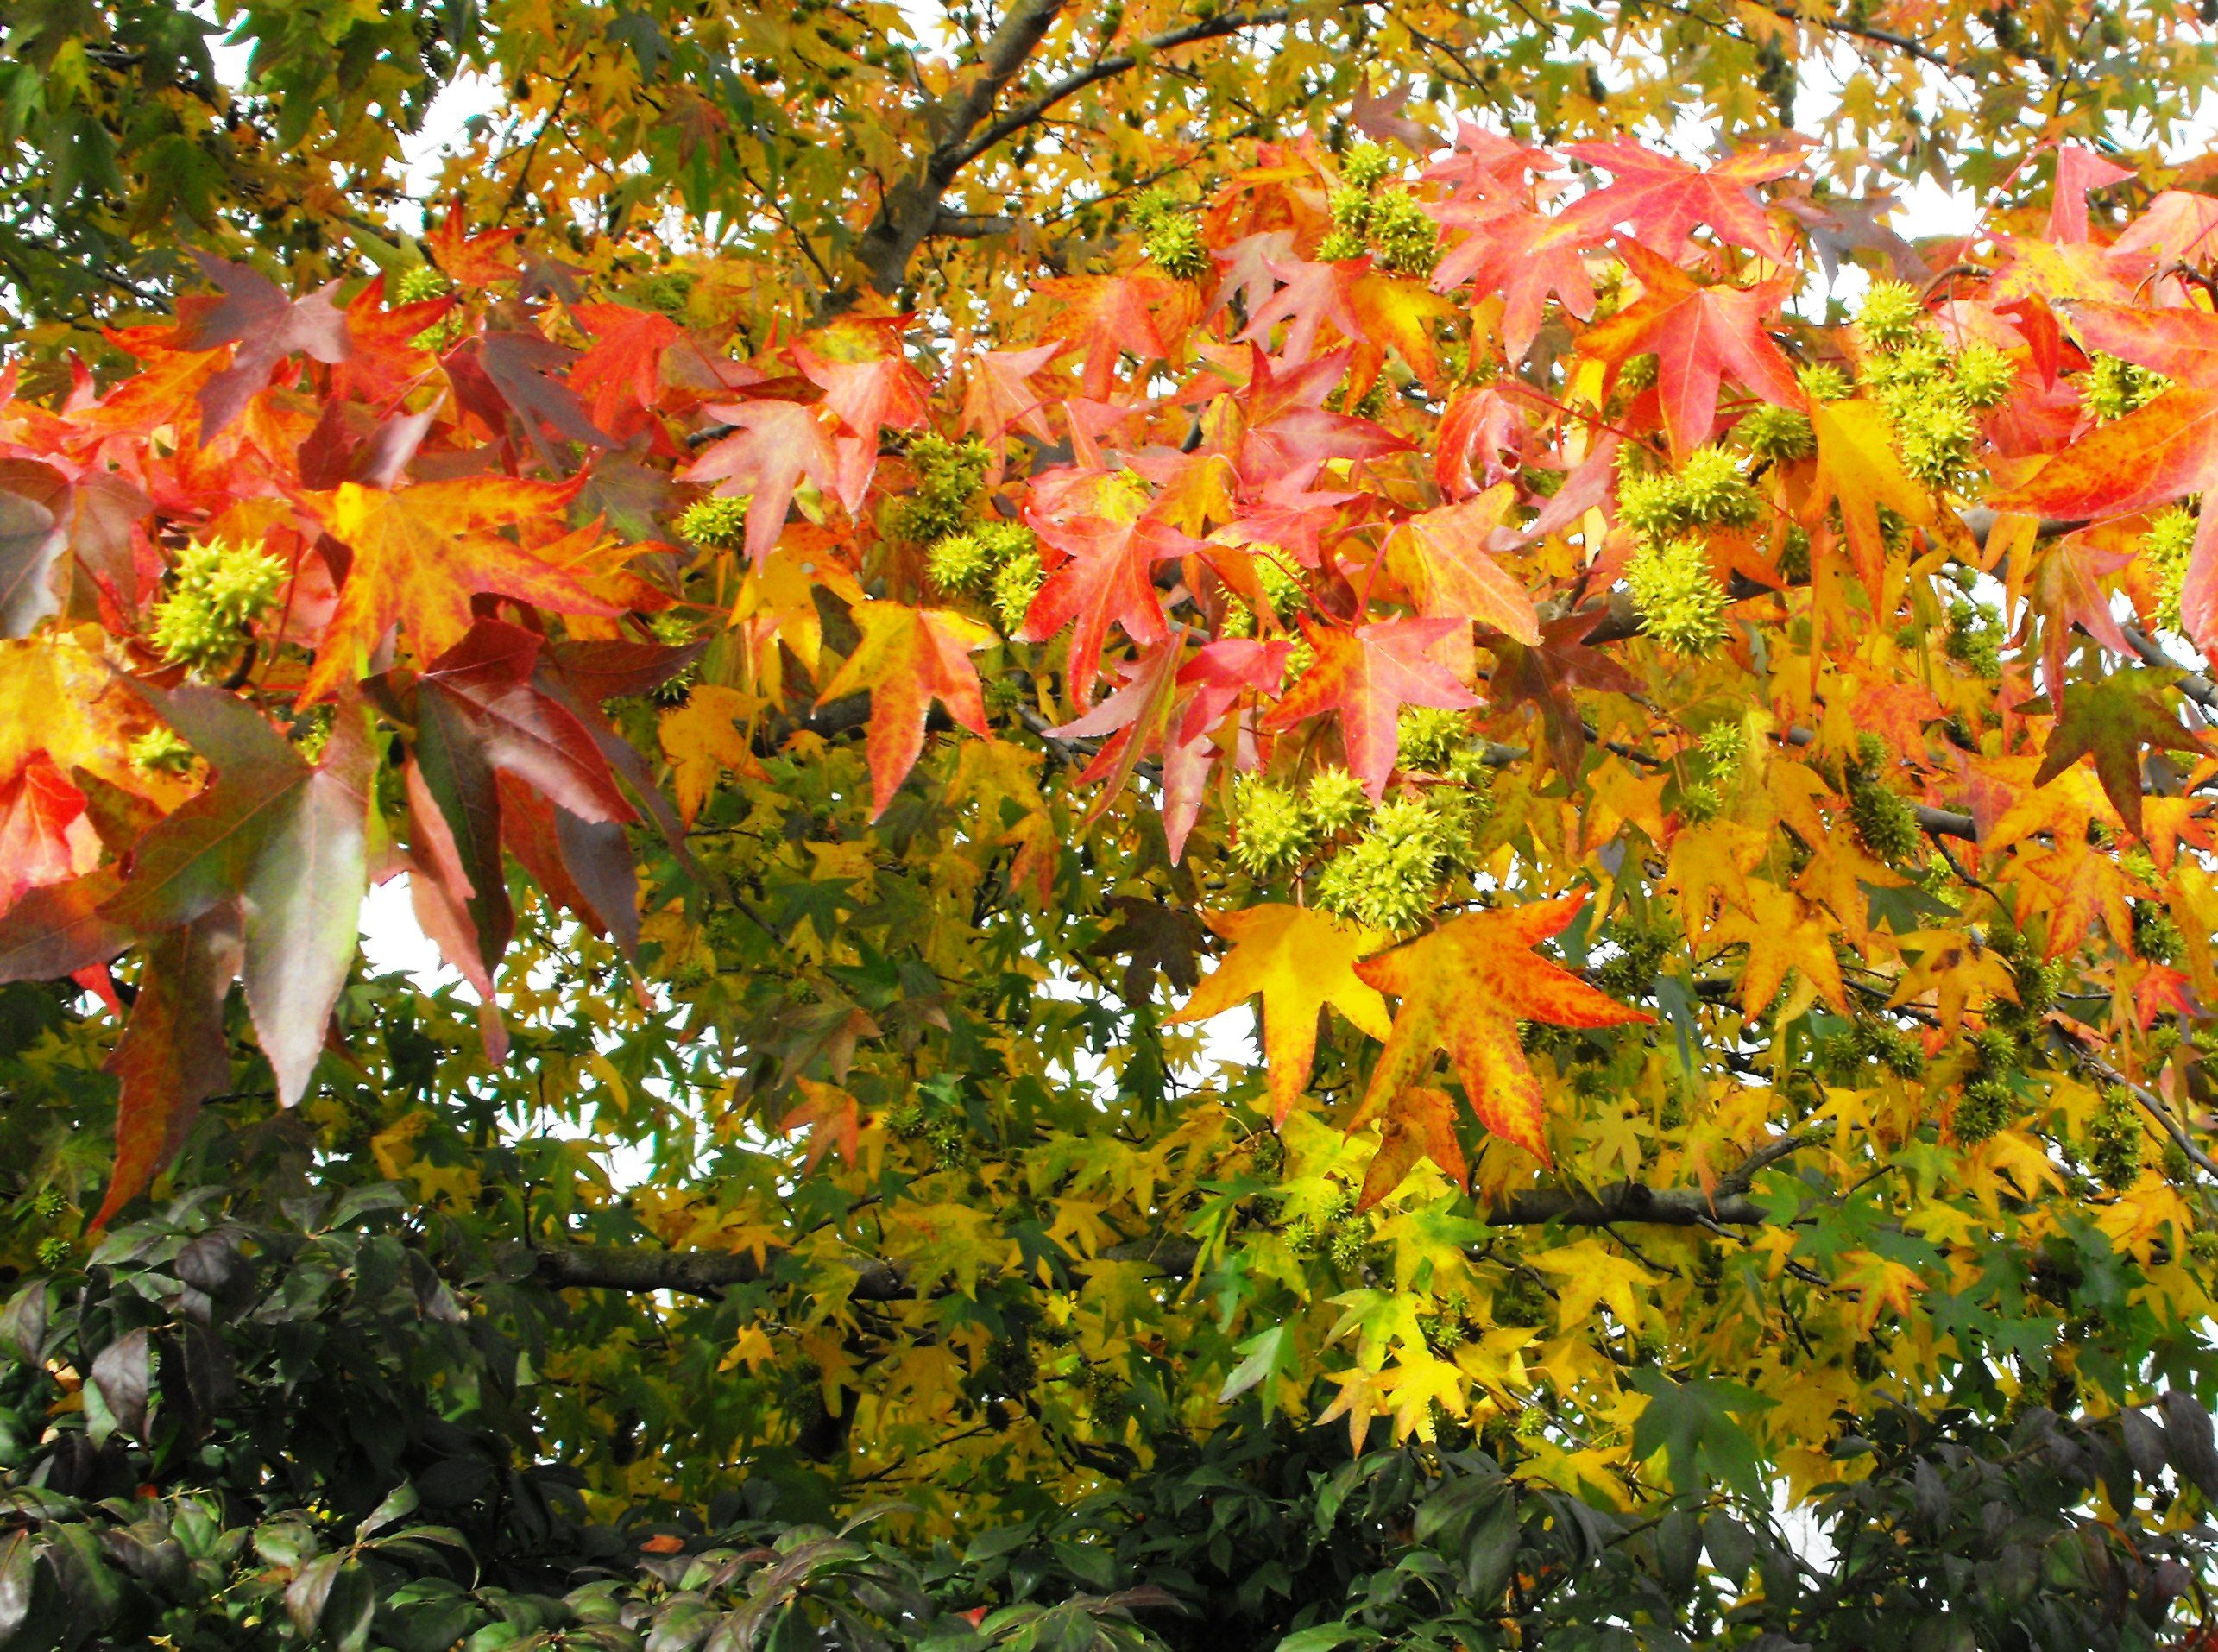 Fall Color Leaves Are A Variety Of Colors On Our Sweet Gum Tree Liquidambar From Yellow To Orange To Red To Purple Seed Pods Garden Inspiration Sweet Gum